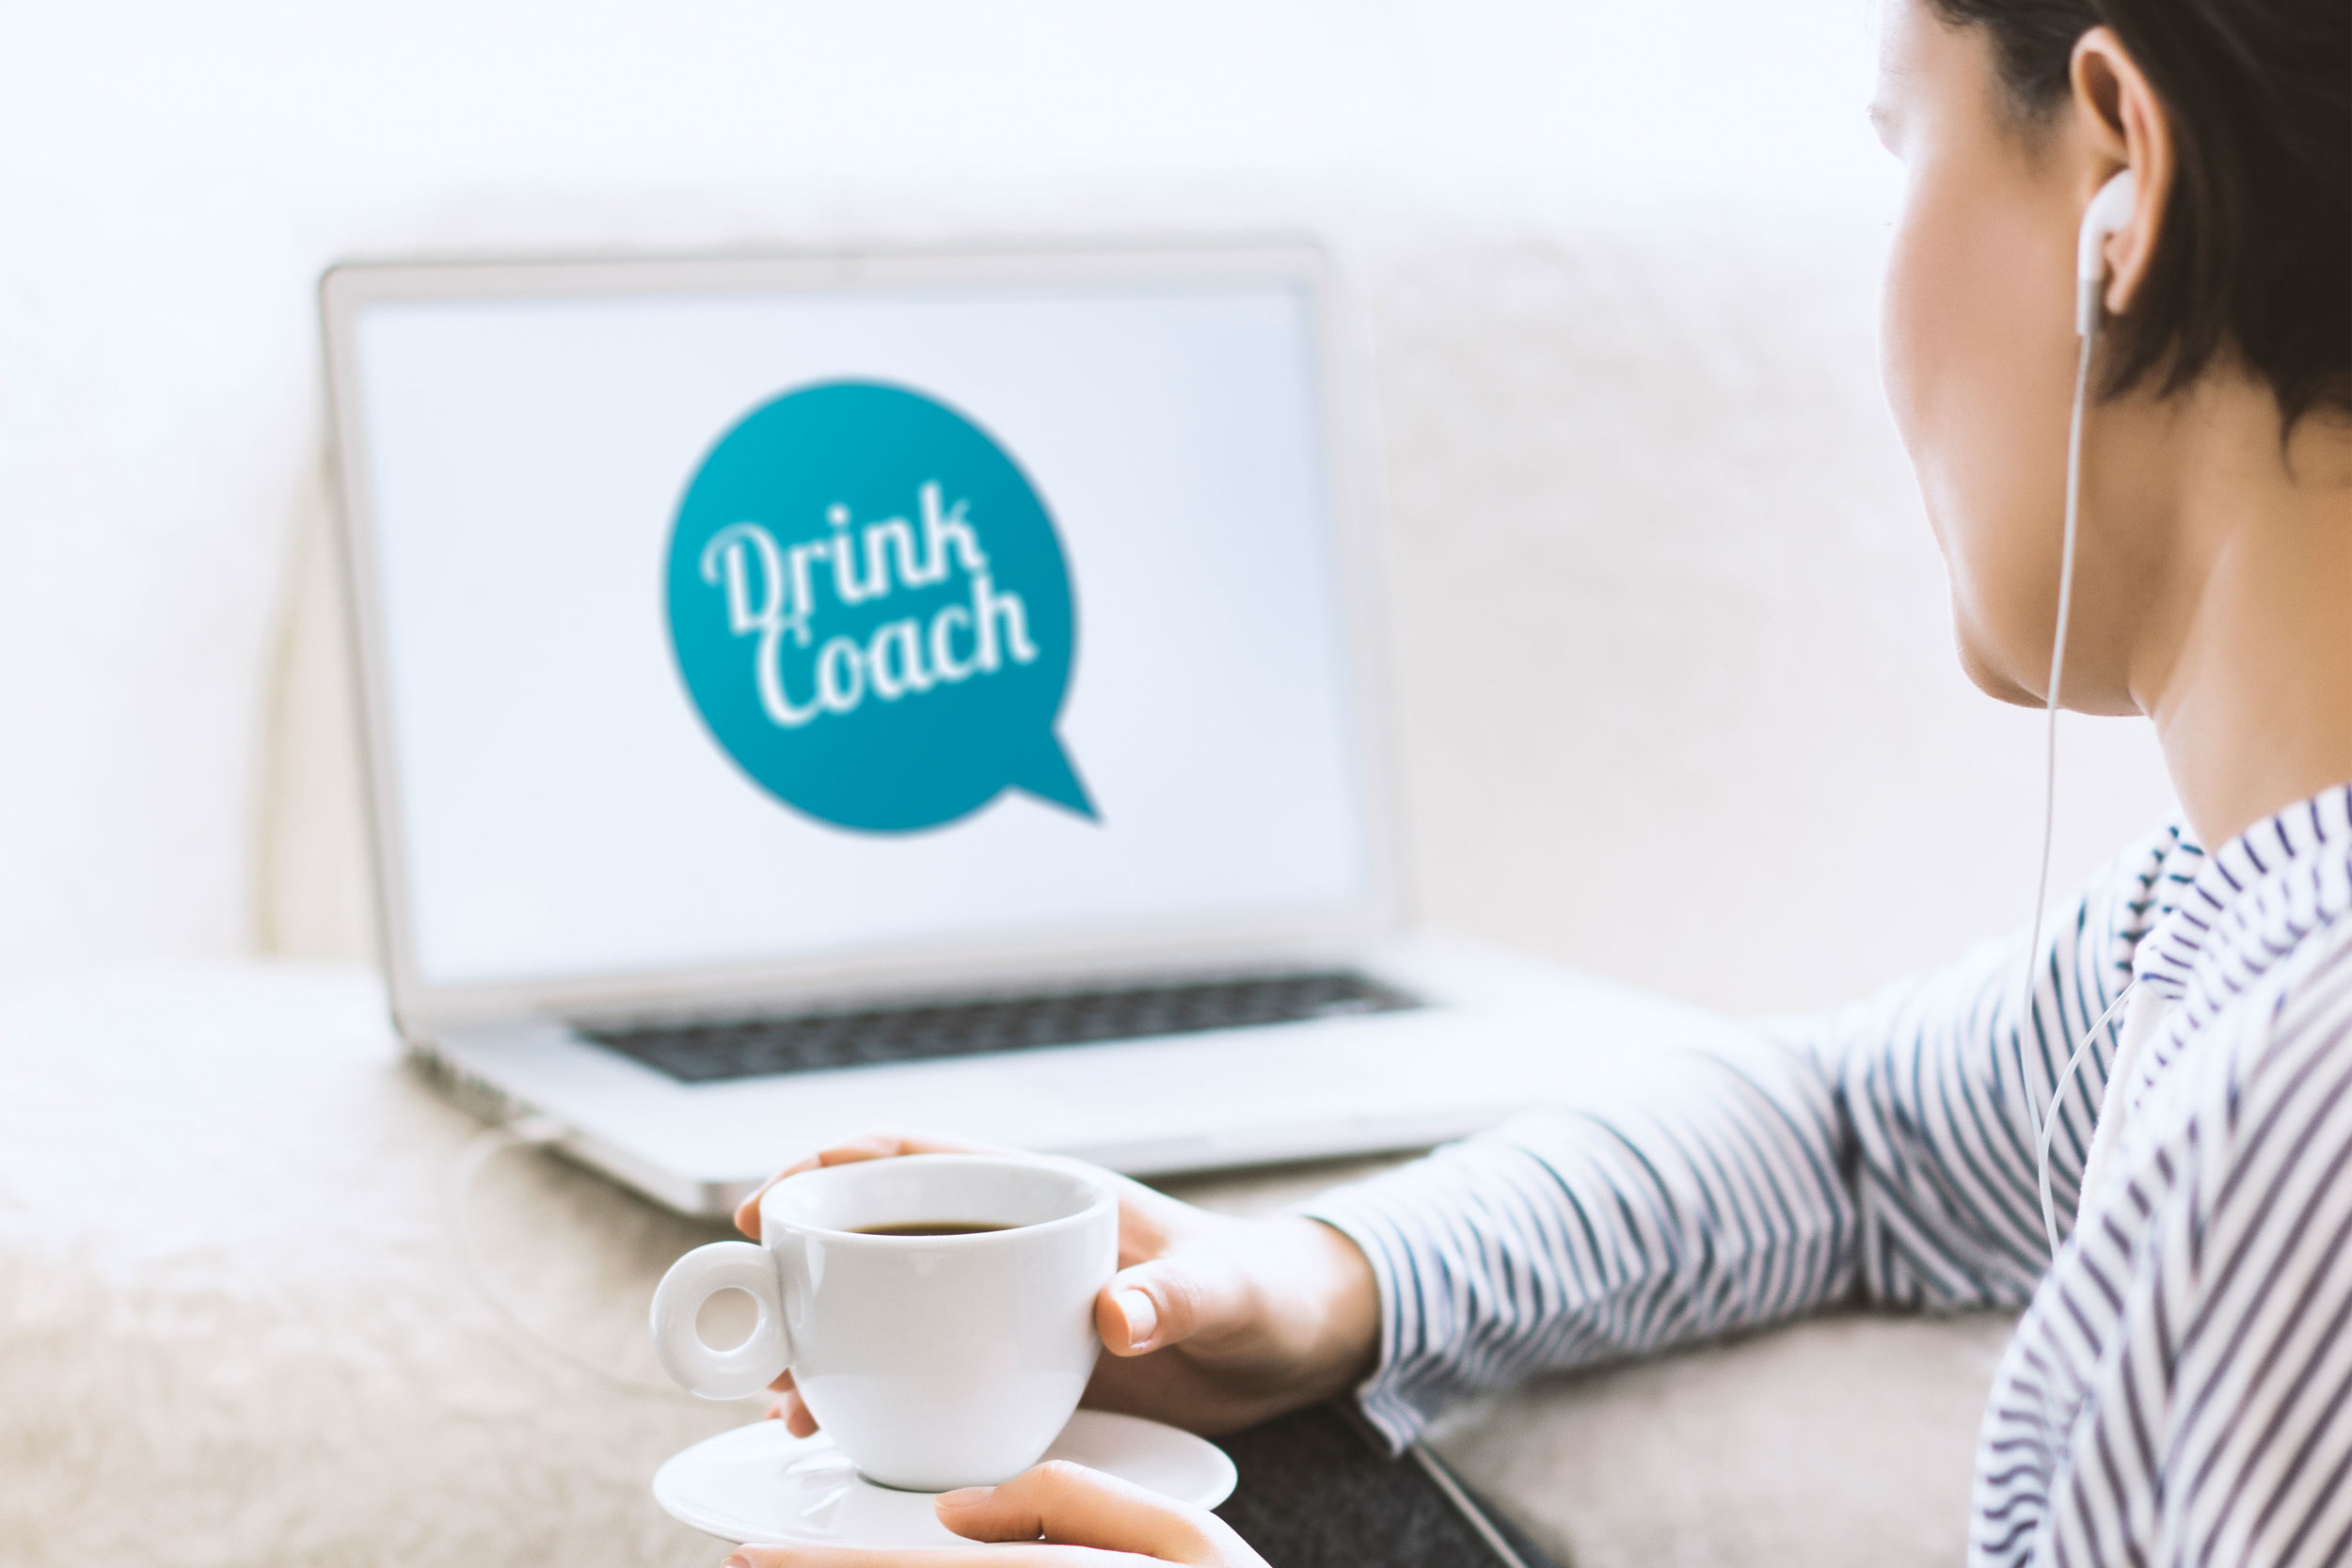 Online Coaching - A professional, convenient and confidential way to discuss your drinking and receive expert guidance from an alcohol treatment specialist.